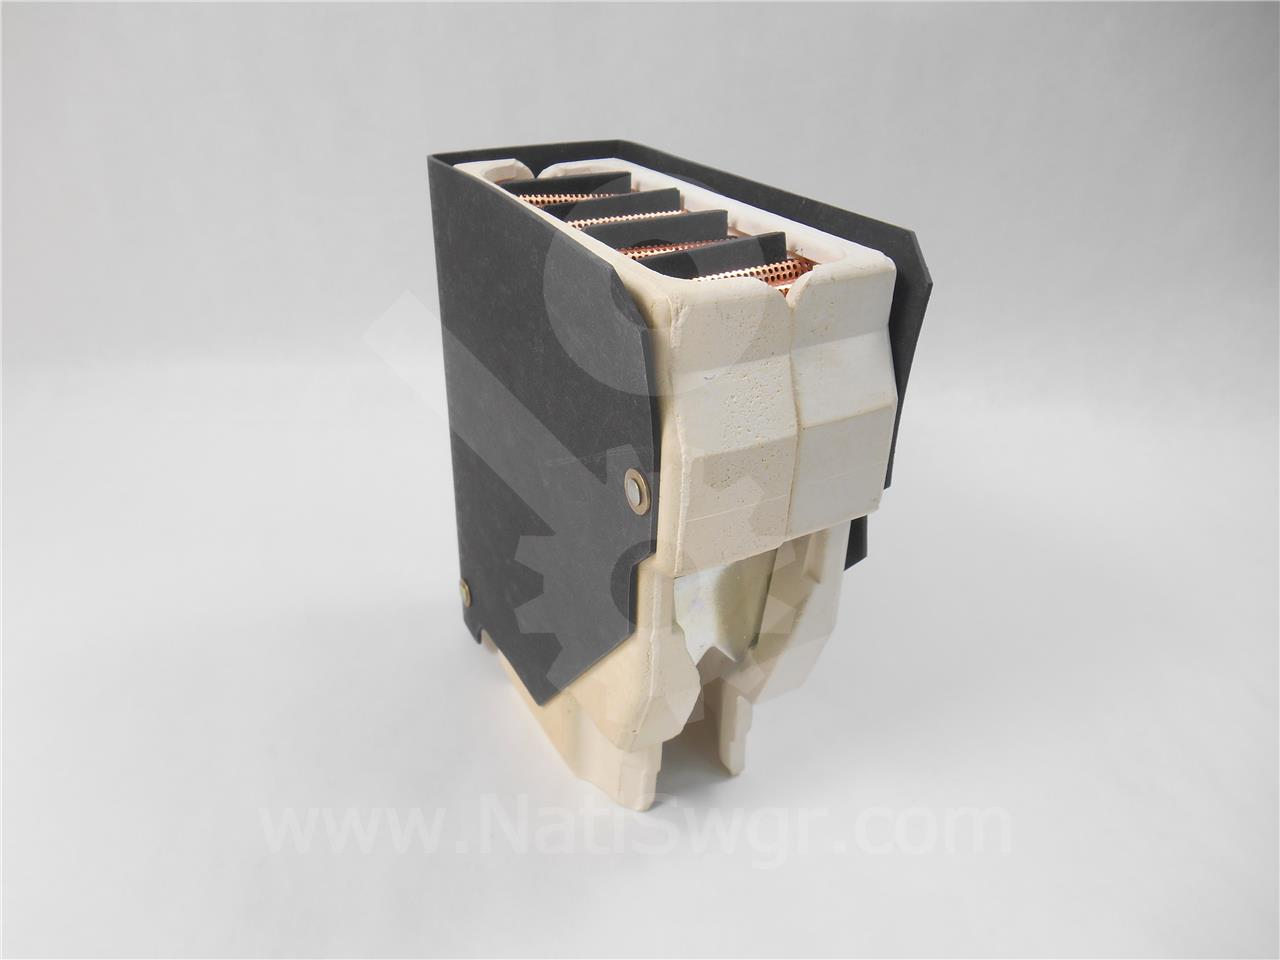 General Electric GE ARC CHUTE ASSEMBLY NEW